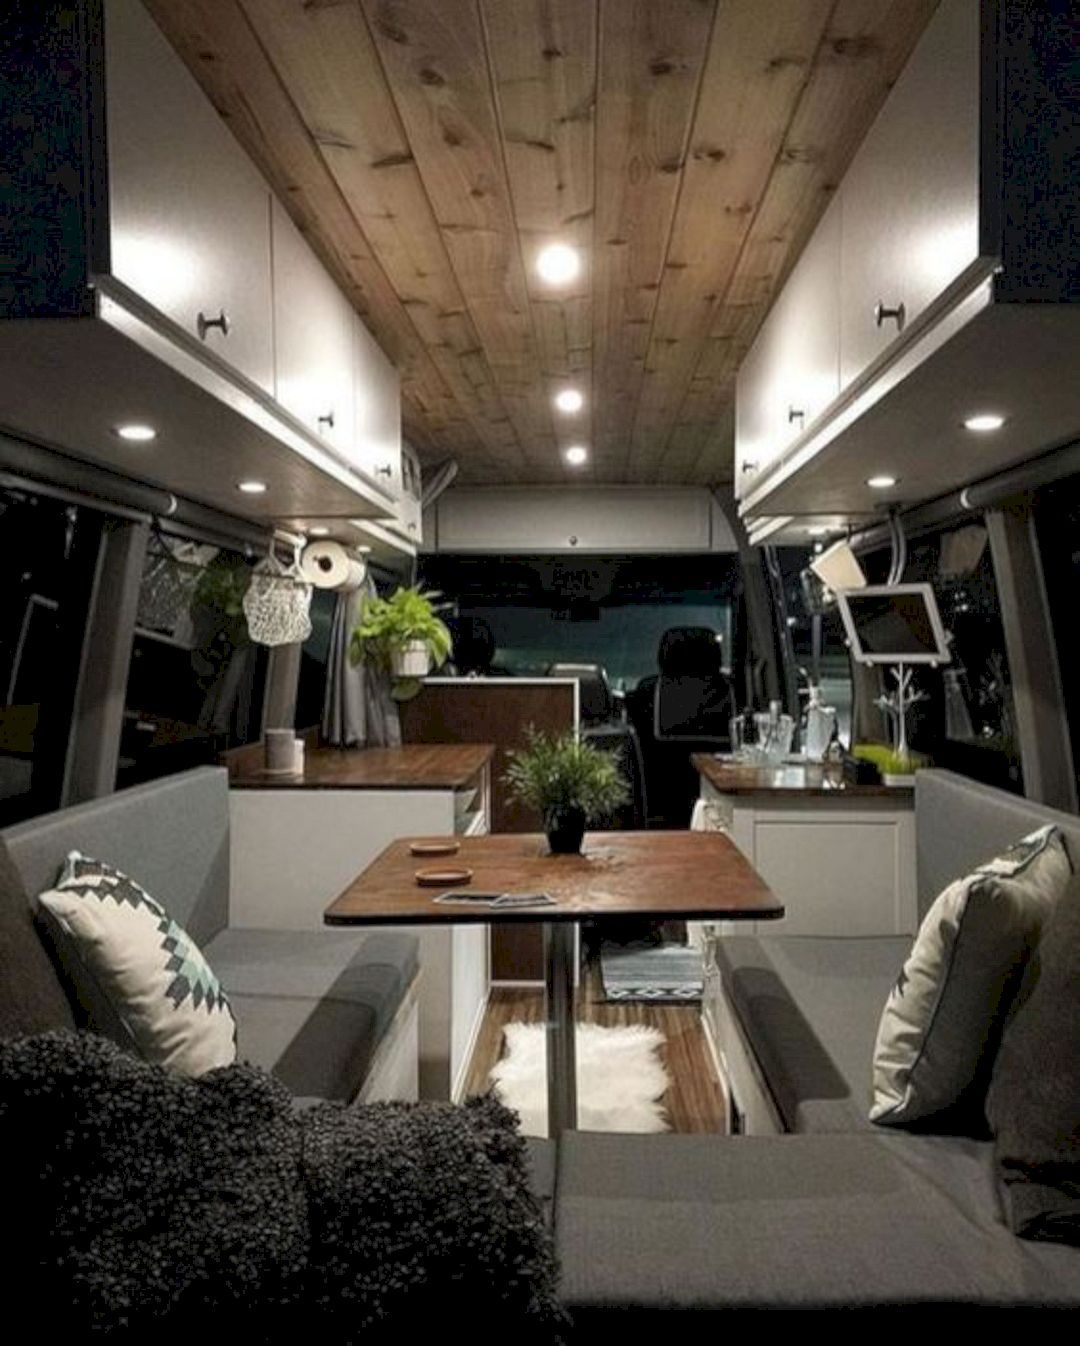 Superbe 15 Campervan Interior Design Ideas For A Cozy Camping Time Https://www.